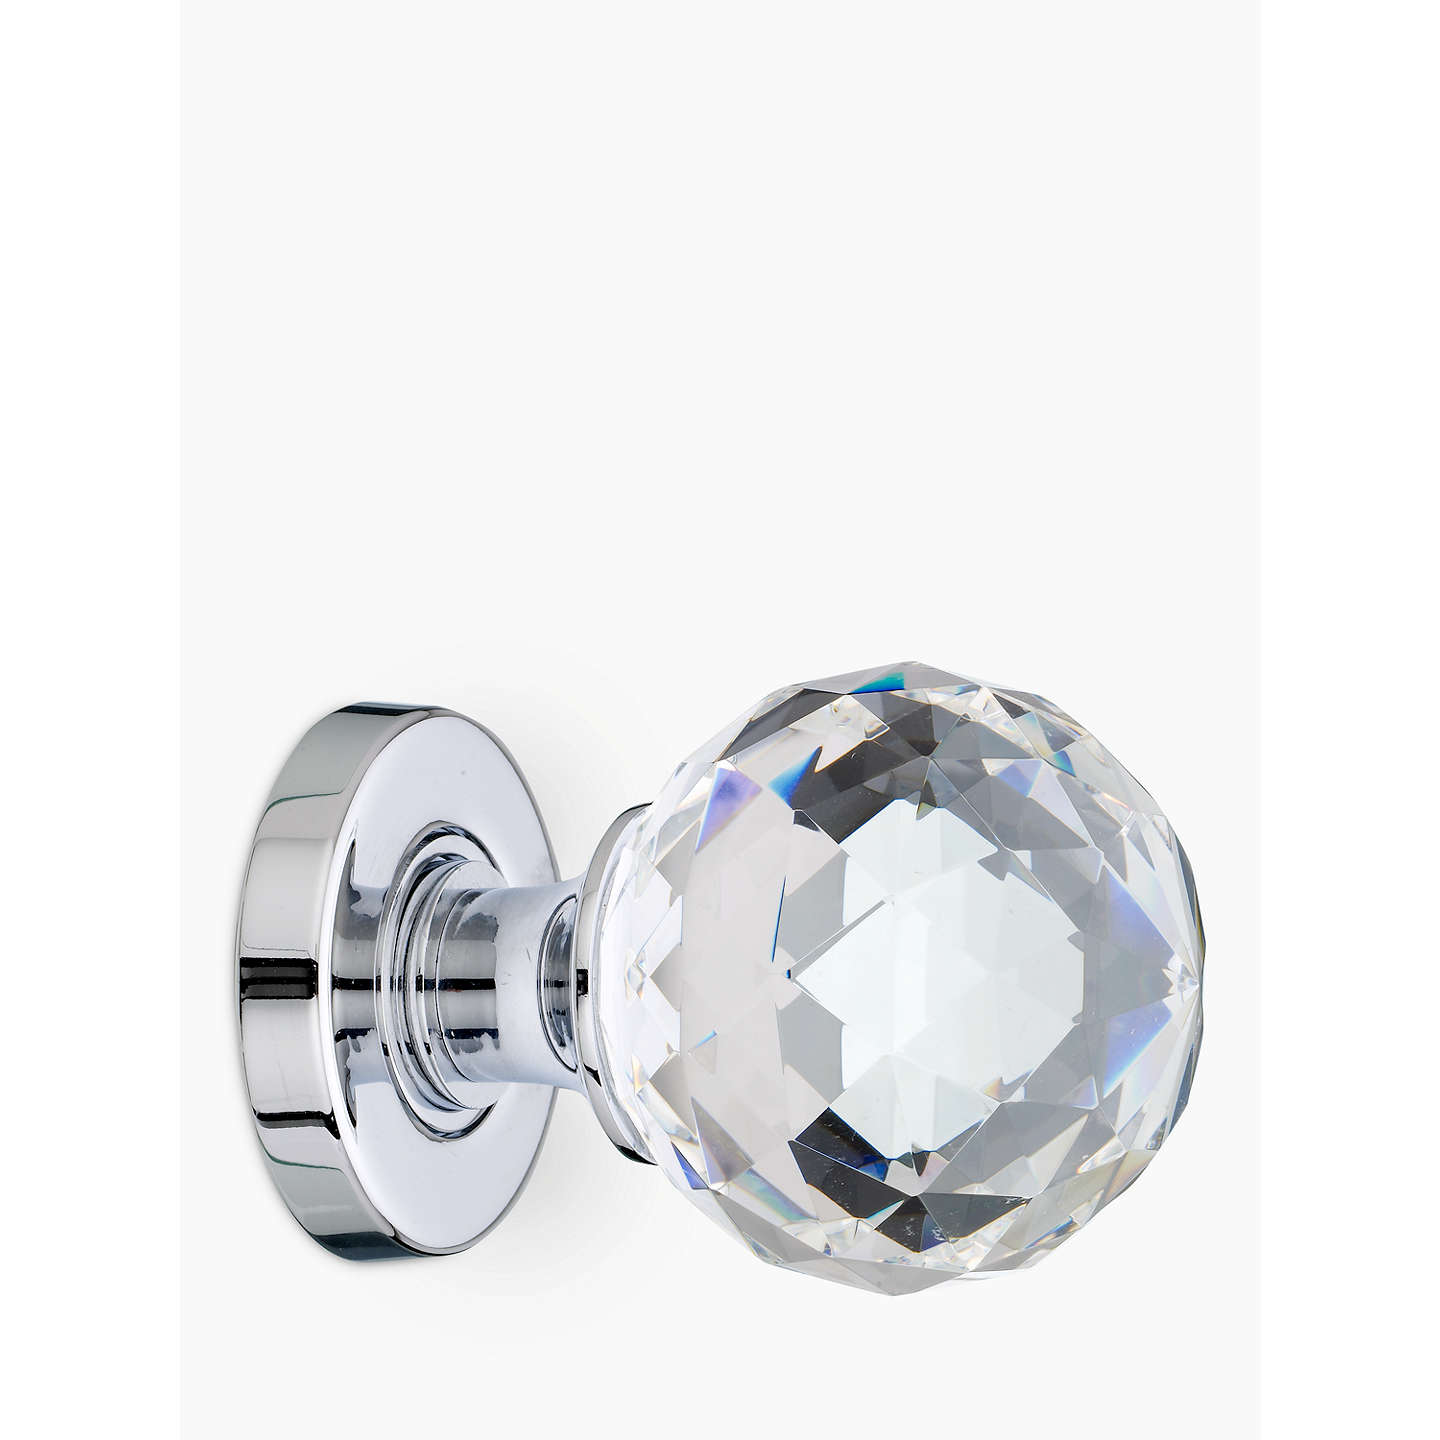 BuyJohn Lewis Crystal Mortice Knobs, Pack of 2, Chrome, Dia.55m Online at johnlewis.com